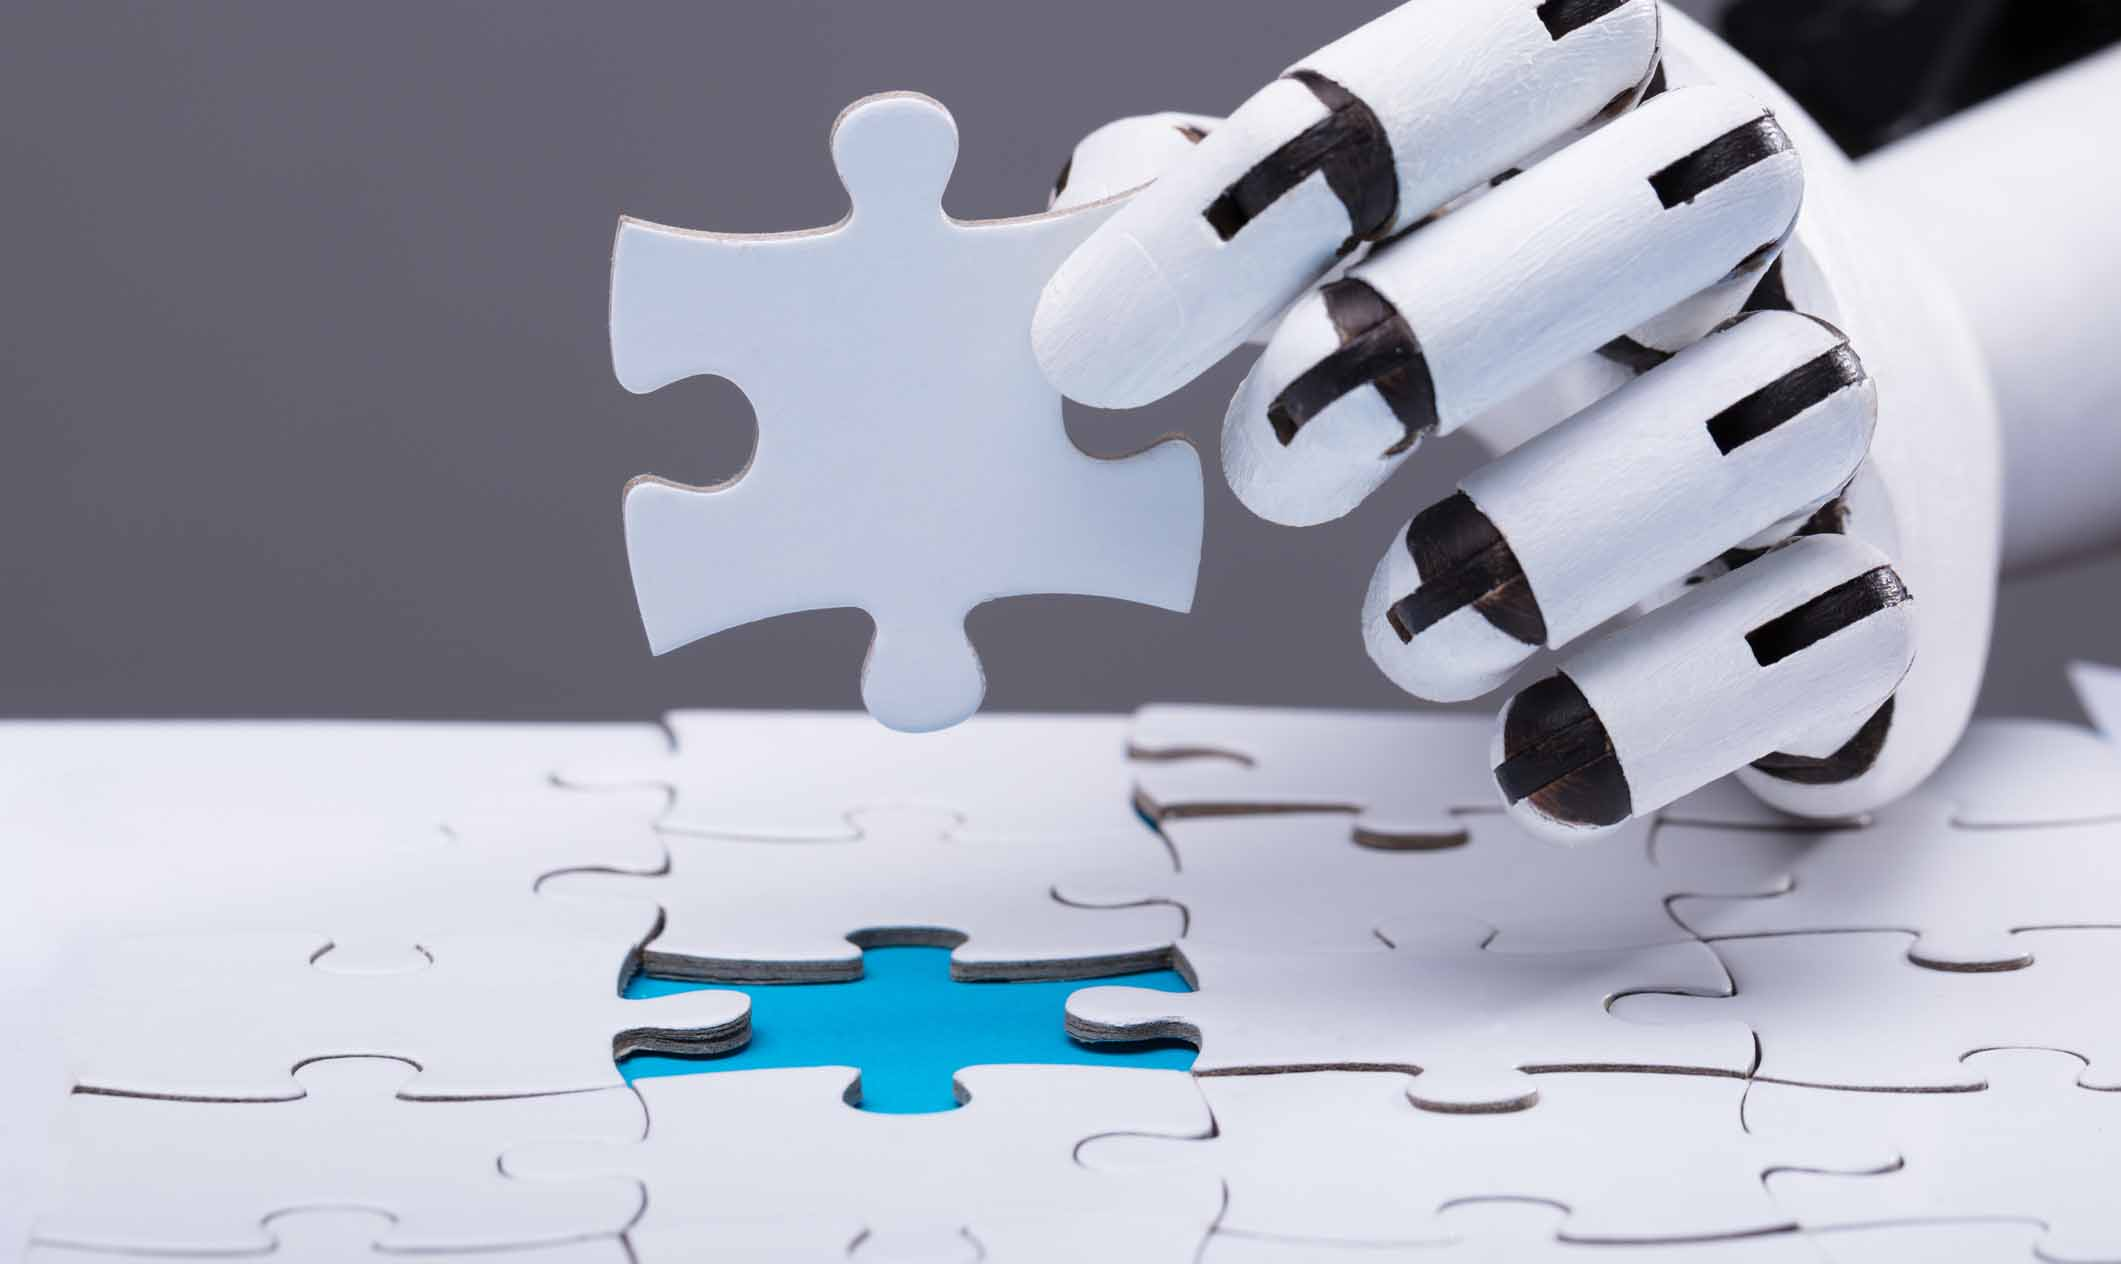 Why Enterprises Need to Operationalize Conversational AI Across their Entire Business